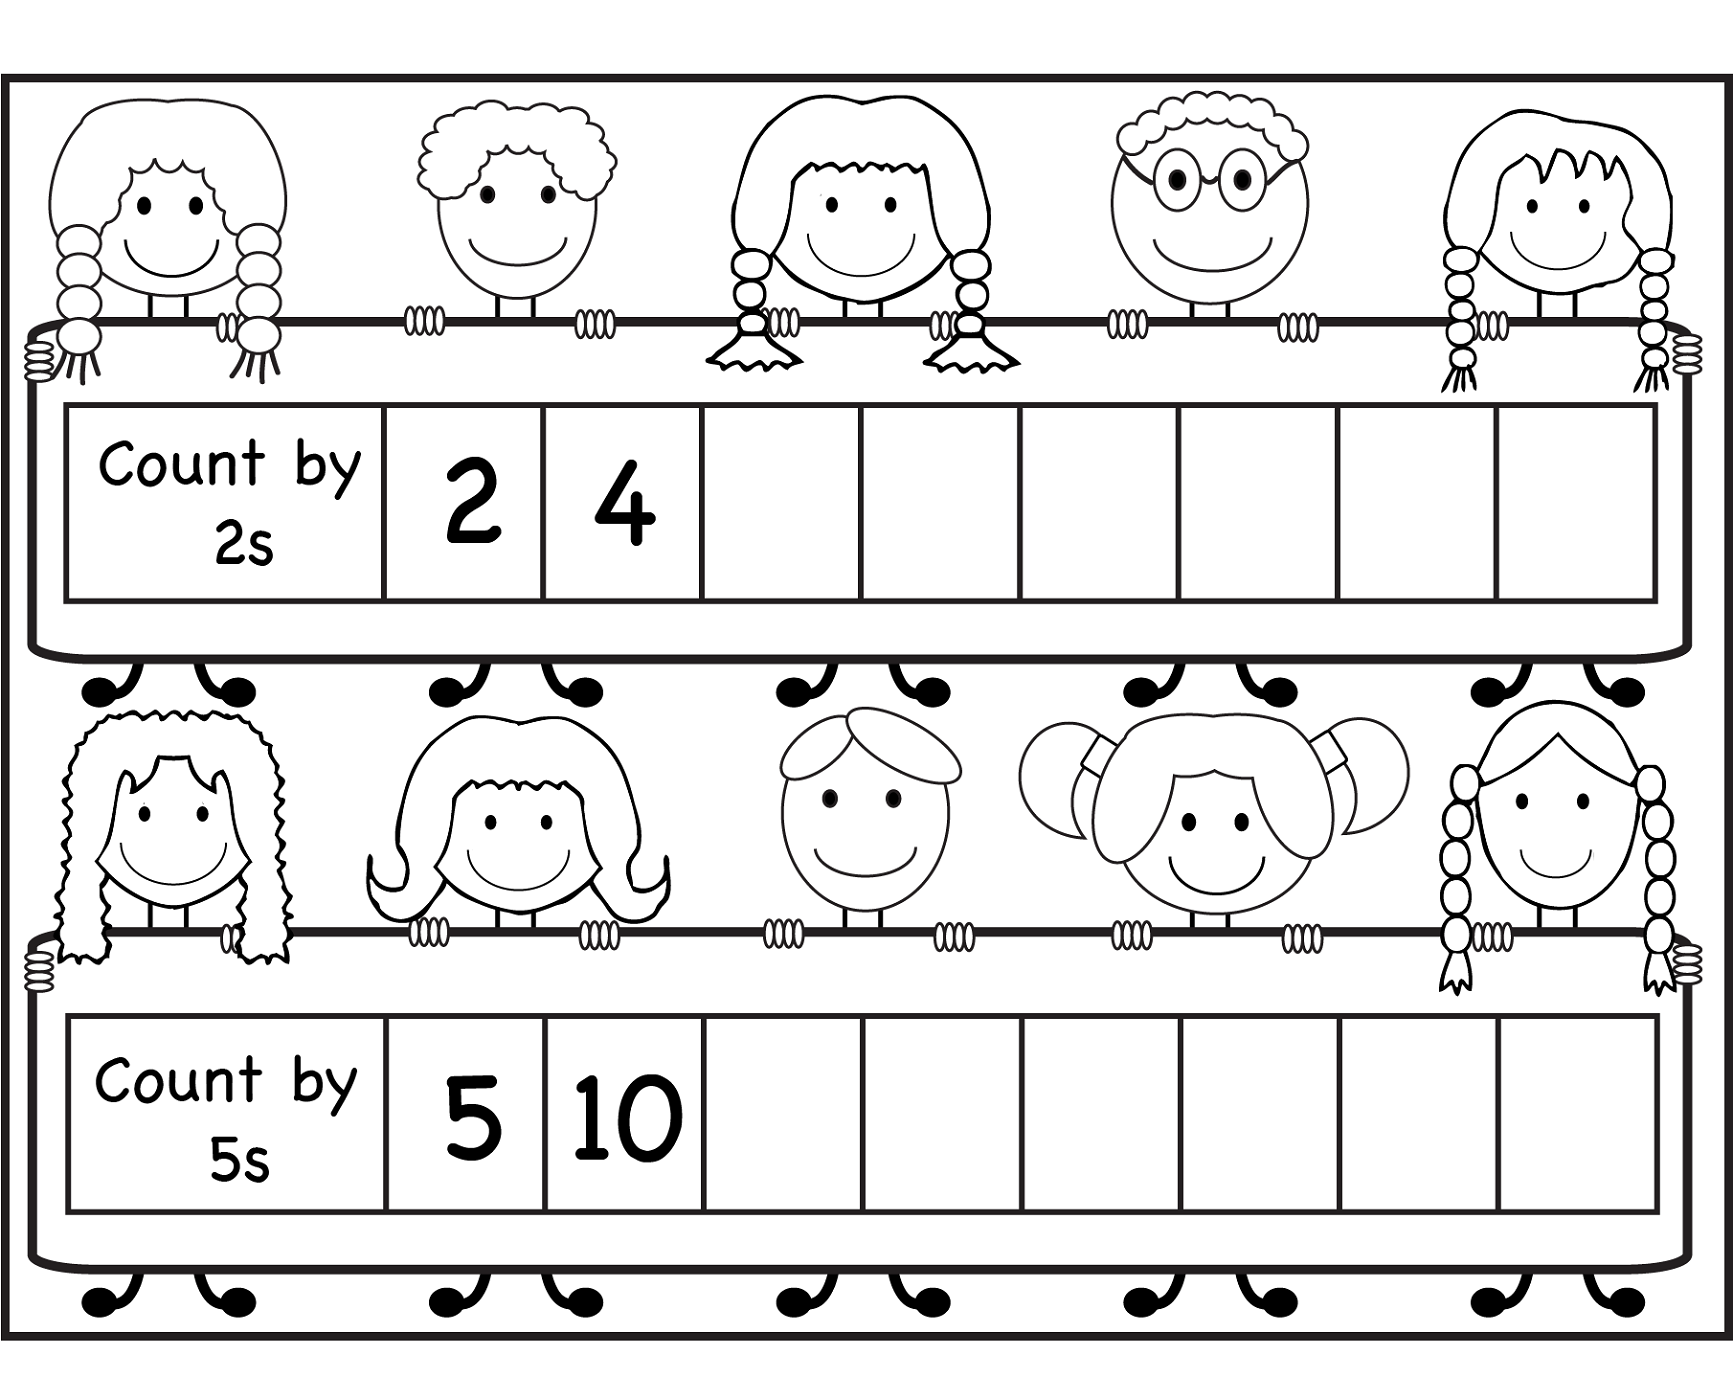 count by 2s worksheet for school